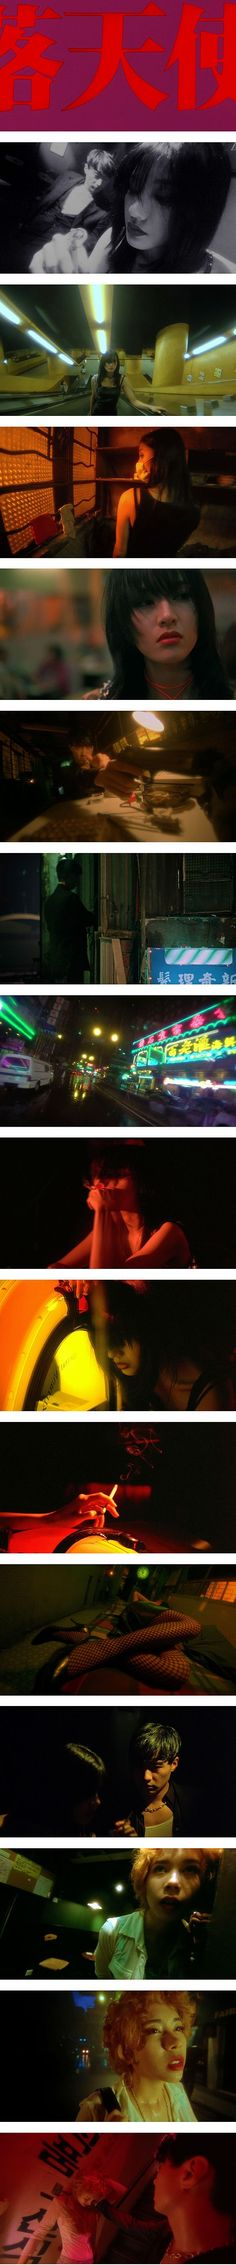 """""""Fallen Angels"""" (1995) by Wong Kar-Wai (Hong Kong) with Christopher Doyle as the director of photo"""